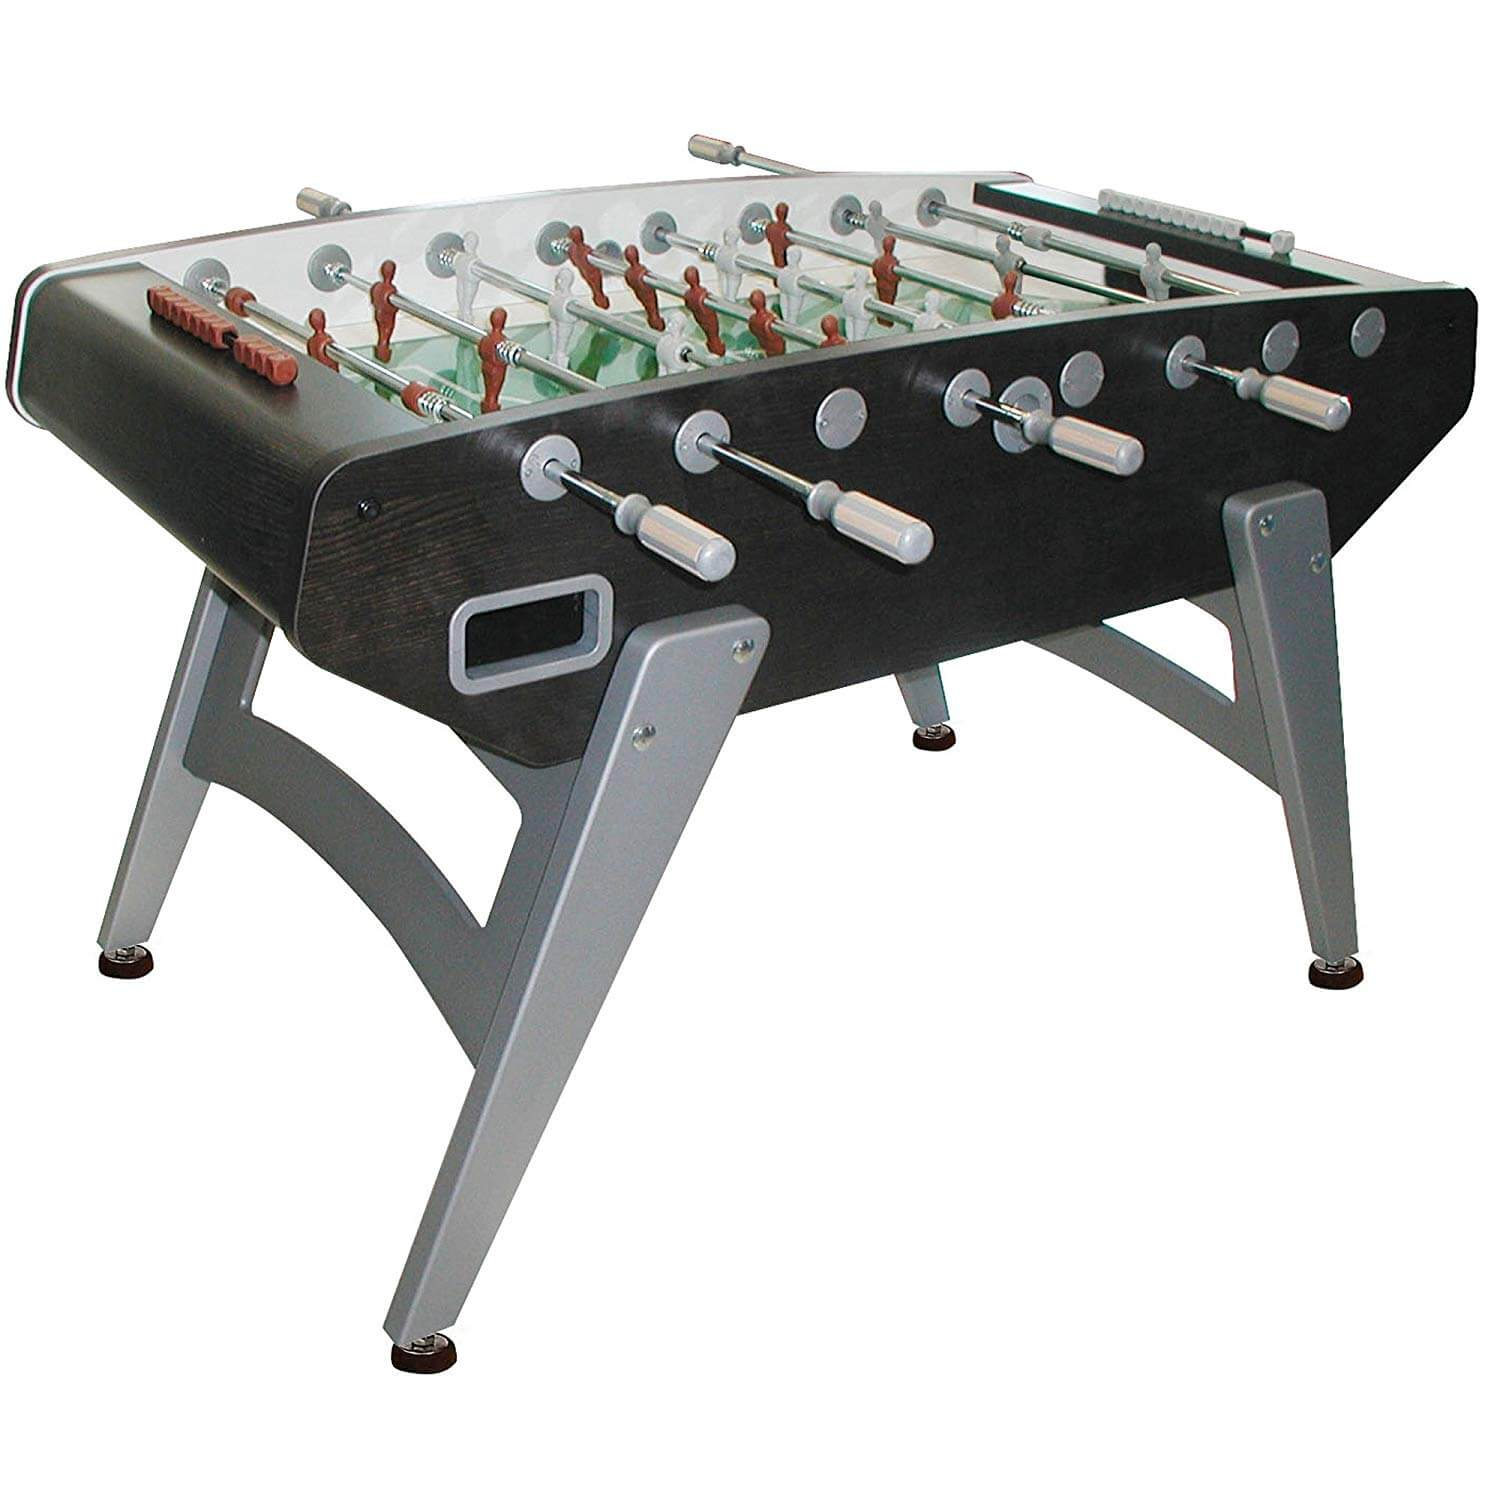 Garlando G-5000 Wenge Foosball Table - Gaming Blaze